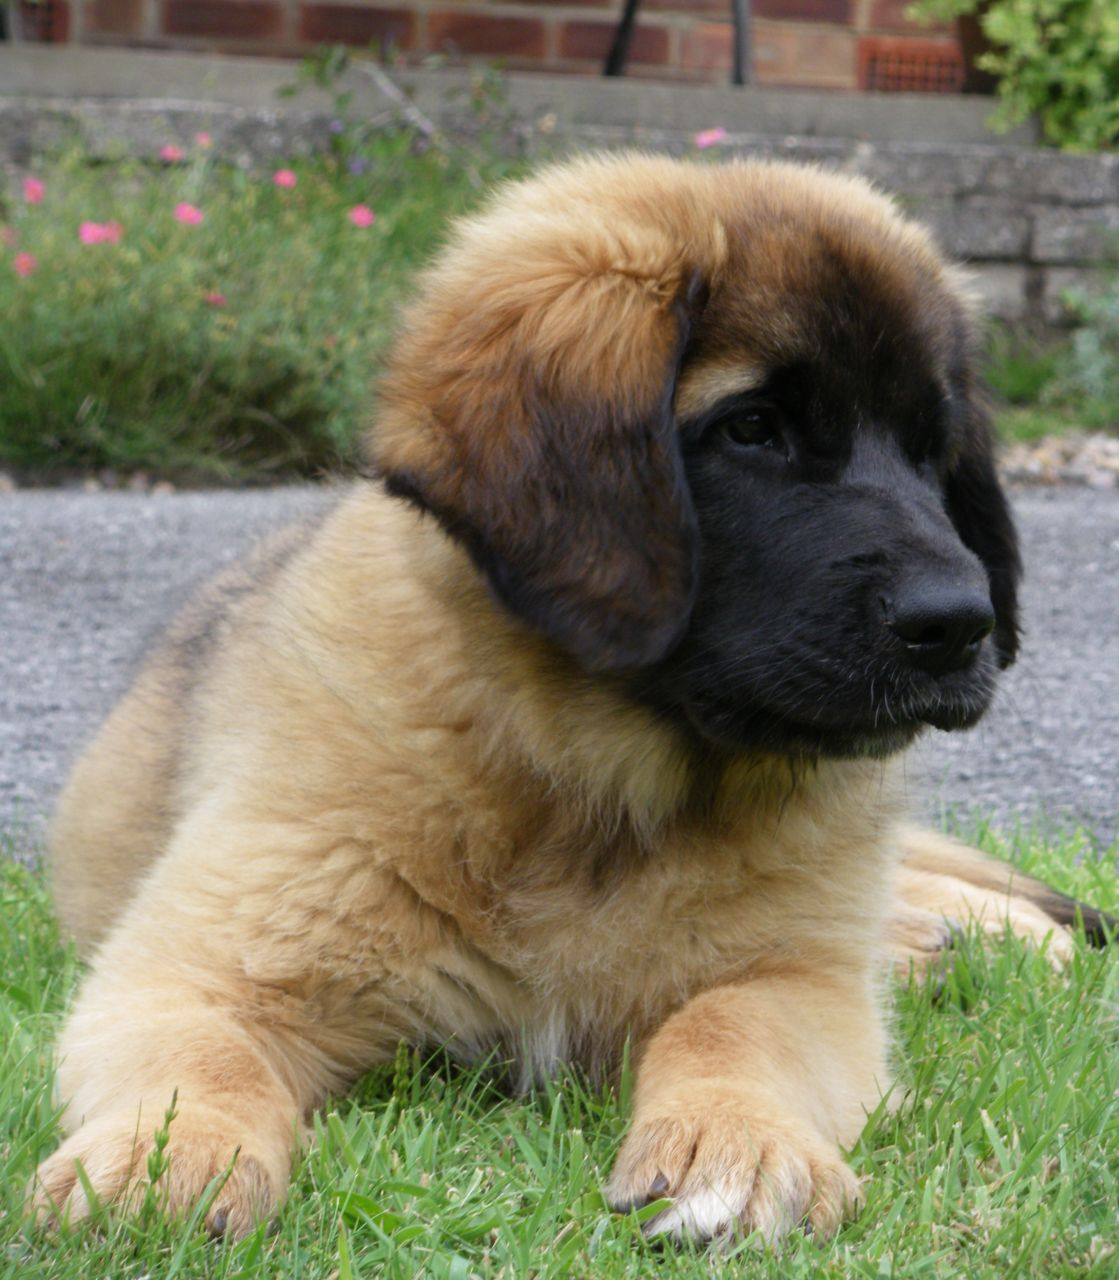 Afbeelding Van Http Www Pets4homes Co Uk Images Classifieds 2013 07 03 350410 Large Gorgeous Litter Of Leonberger Leonberger Puppy Leonberger Dog Leonberger